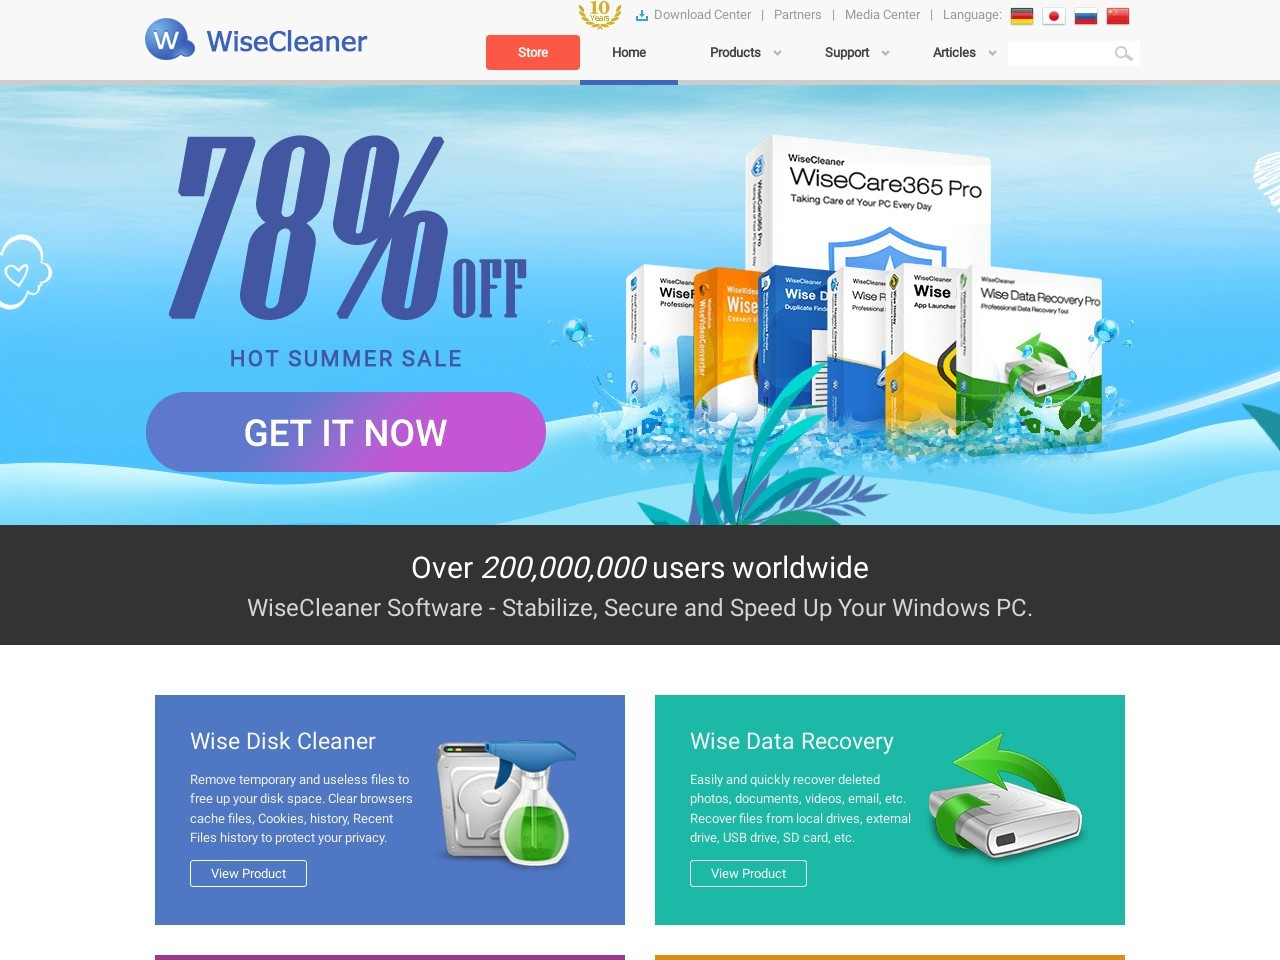 Wisecleaner